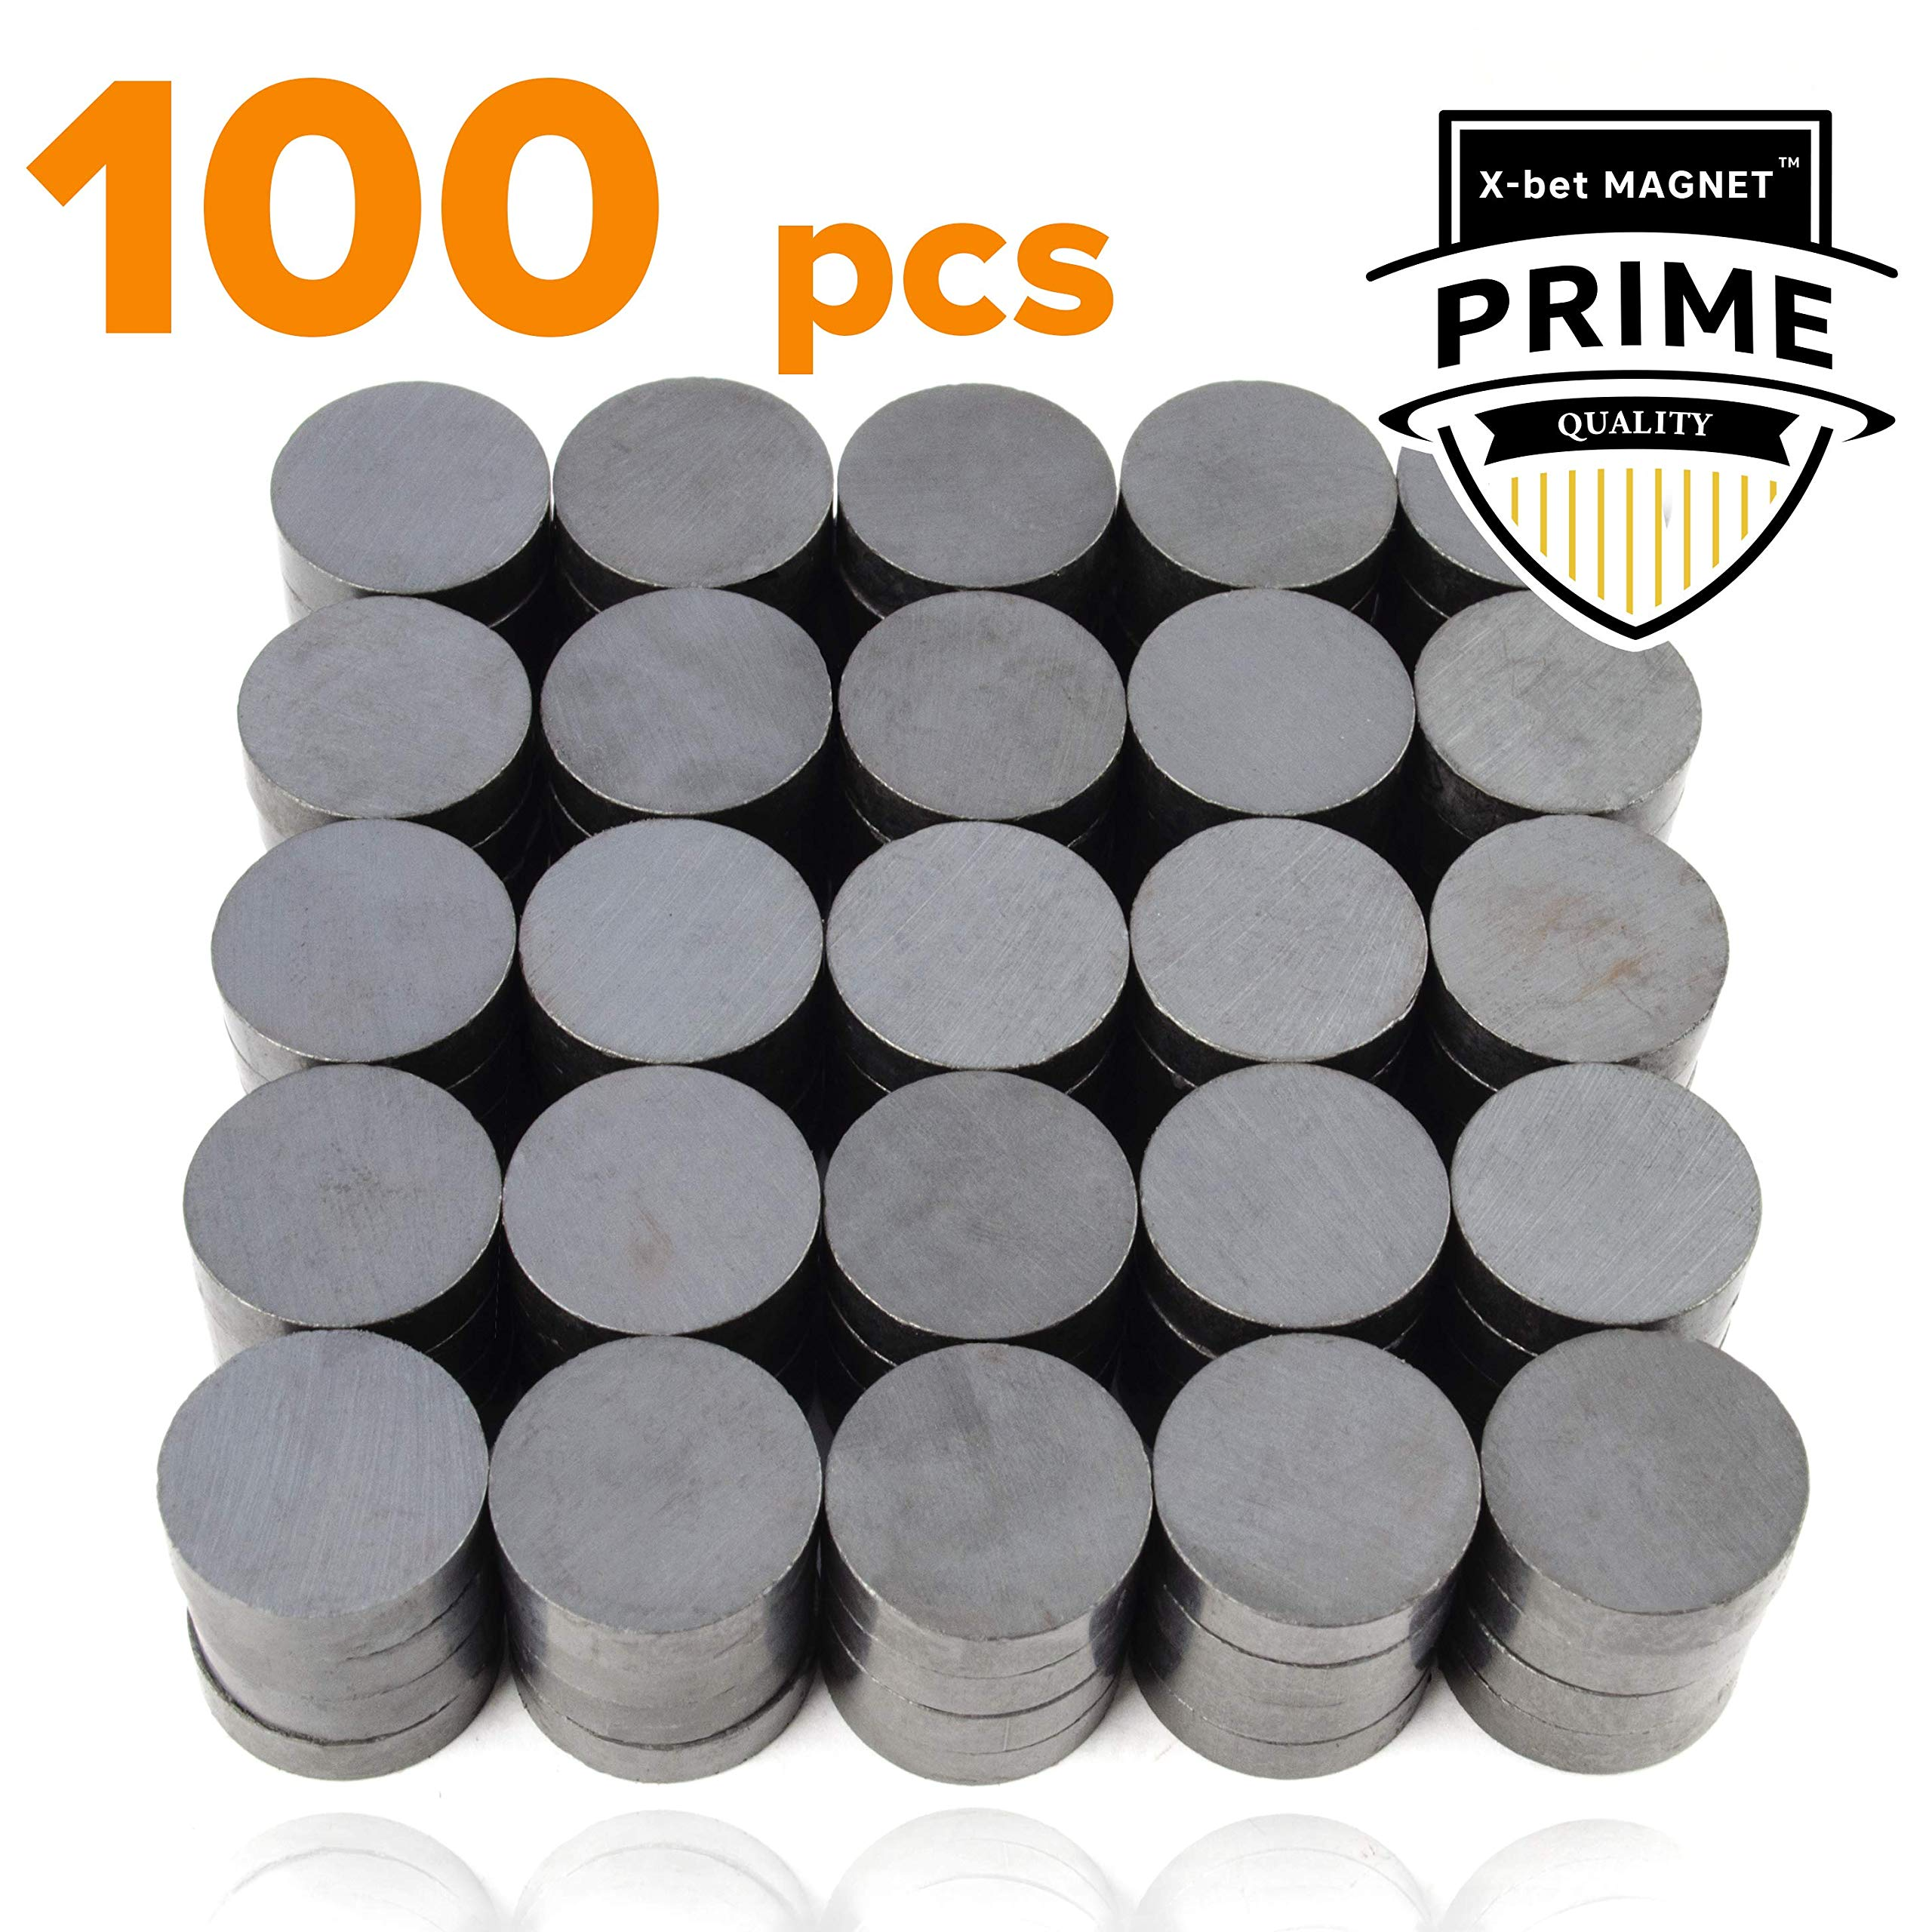 X-bet MAGNET ™ 100 pcs Ceramic Magnets - Tiny 18 mm (.709 inch) Round Disc - Flat Circle Magnets Bulk for Crafts, Science & hobbies - Perfect for Refrigerator, Whiteboard, Fridge by X-bet MAGNET